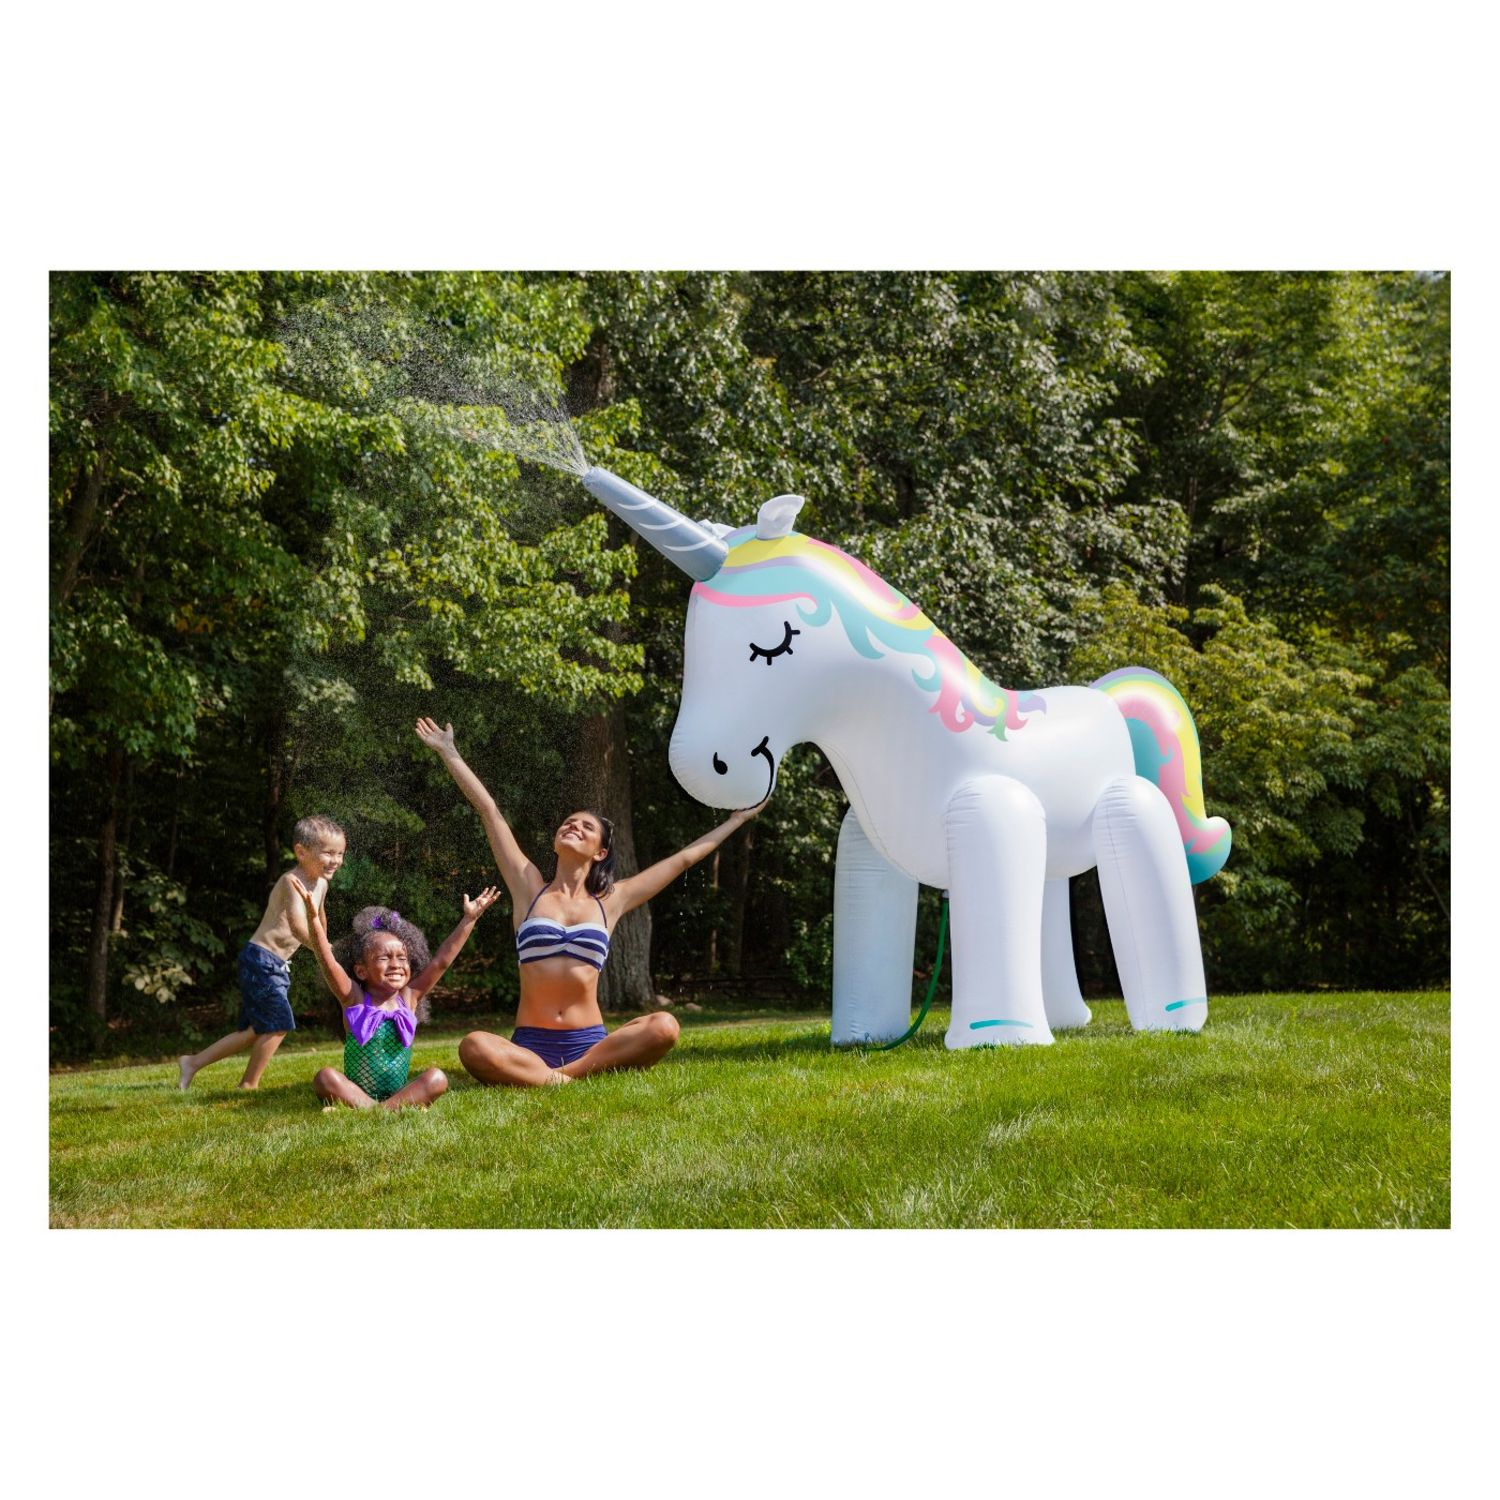 You Can Buy This Giant Unicorn Sprinkler at Target